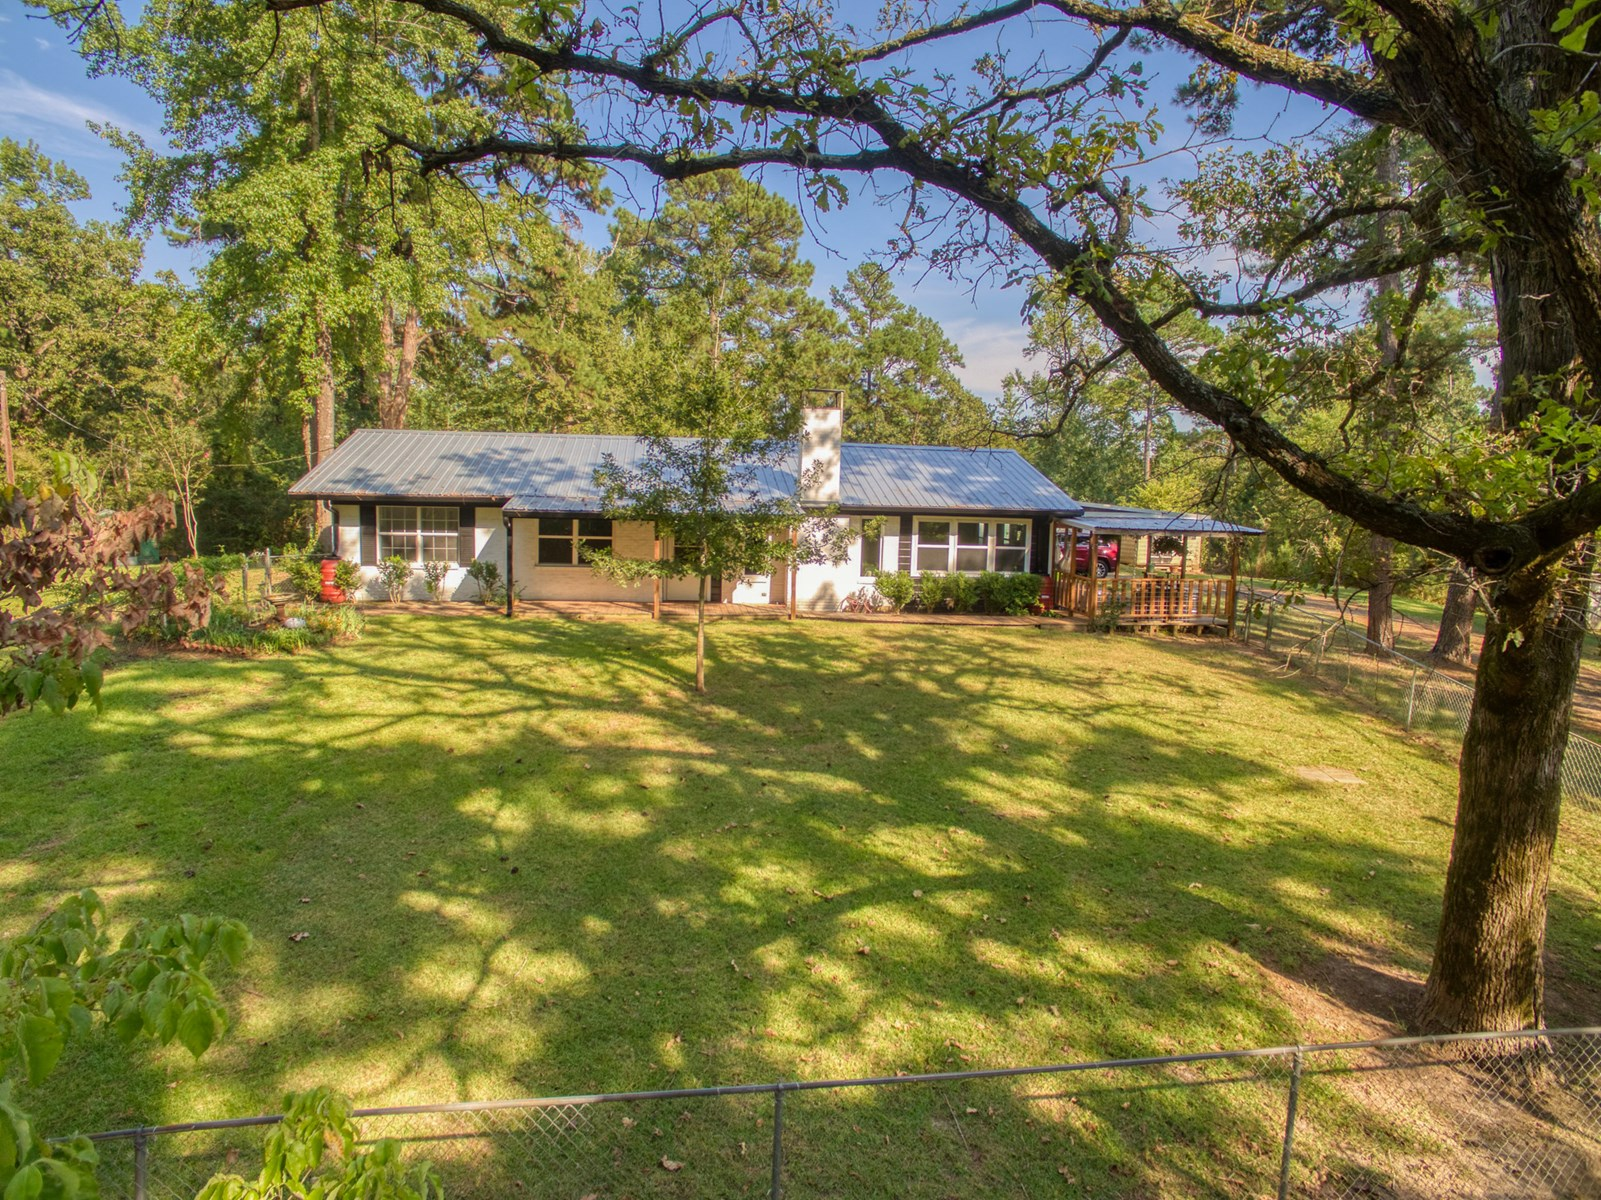 UPDATED COUNTRY HOME FOR SALE IN EAST TEXAS PINEY WOODS